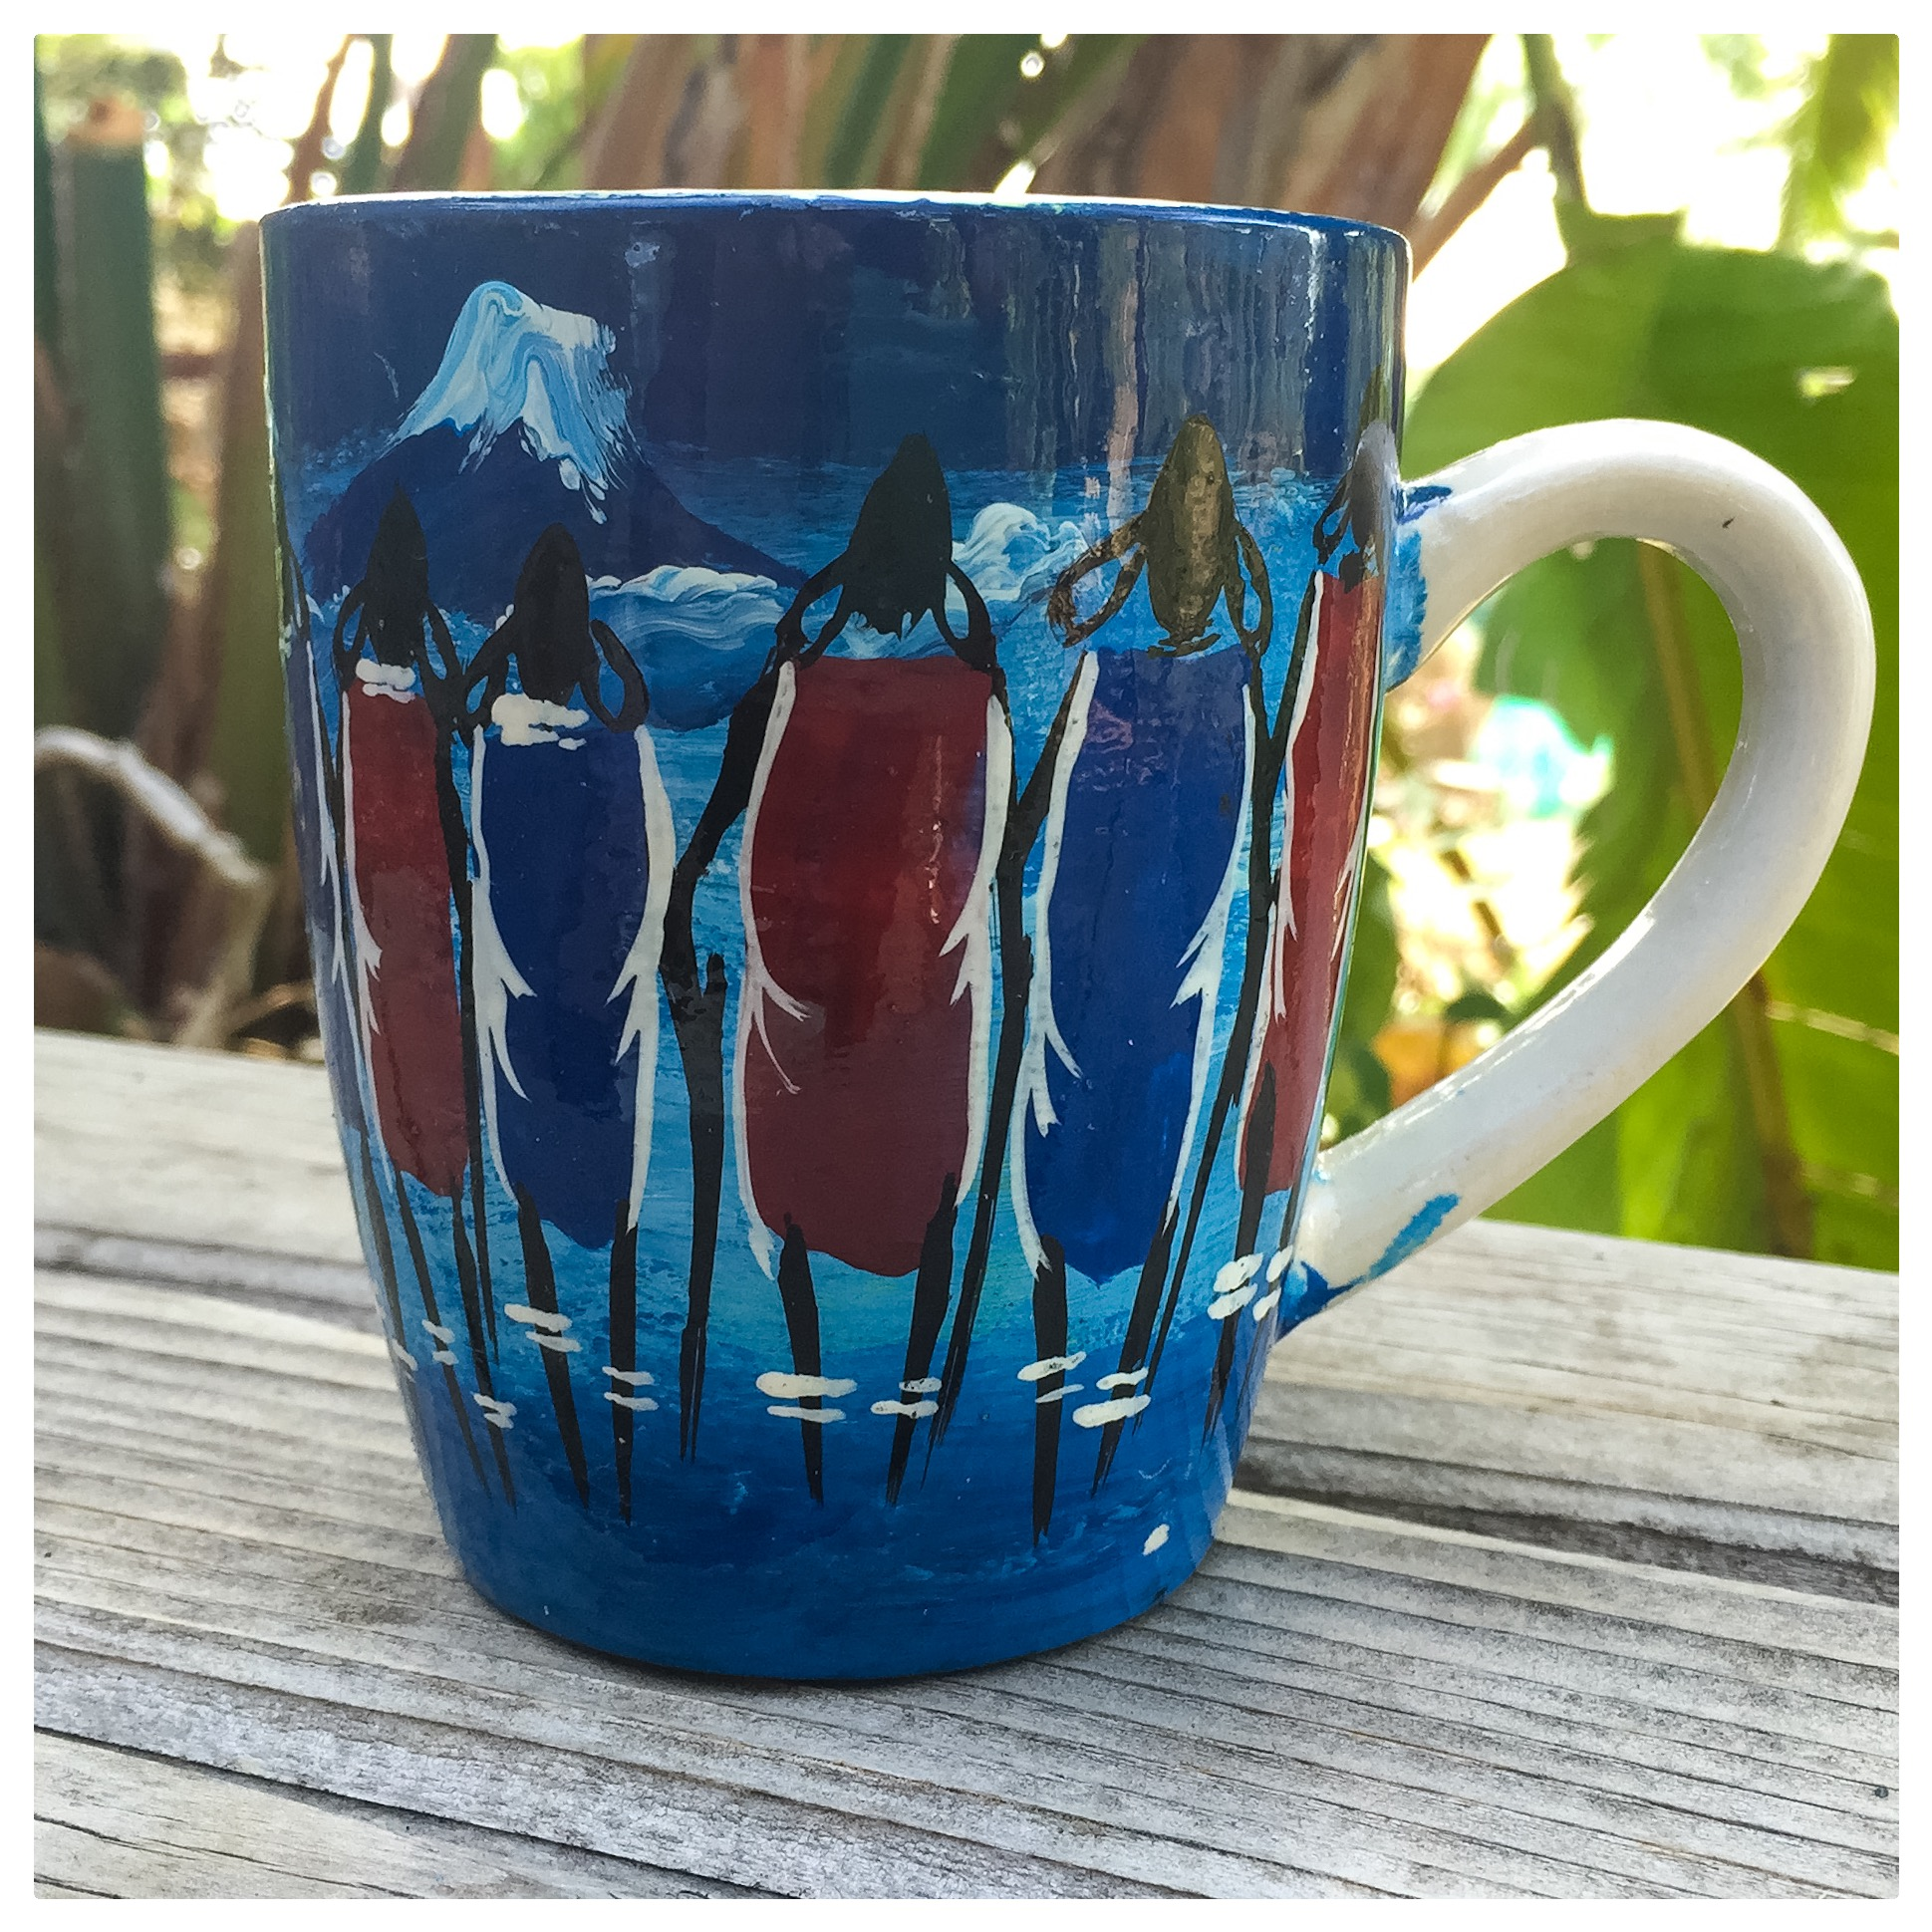 Maasai mug from Tanzania, hand picked and purchased by our 8 year old friend Natalie! Look back in our blog for an interview with her!